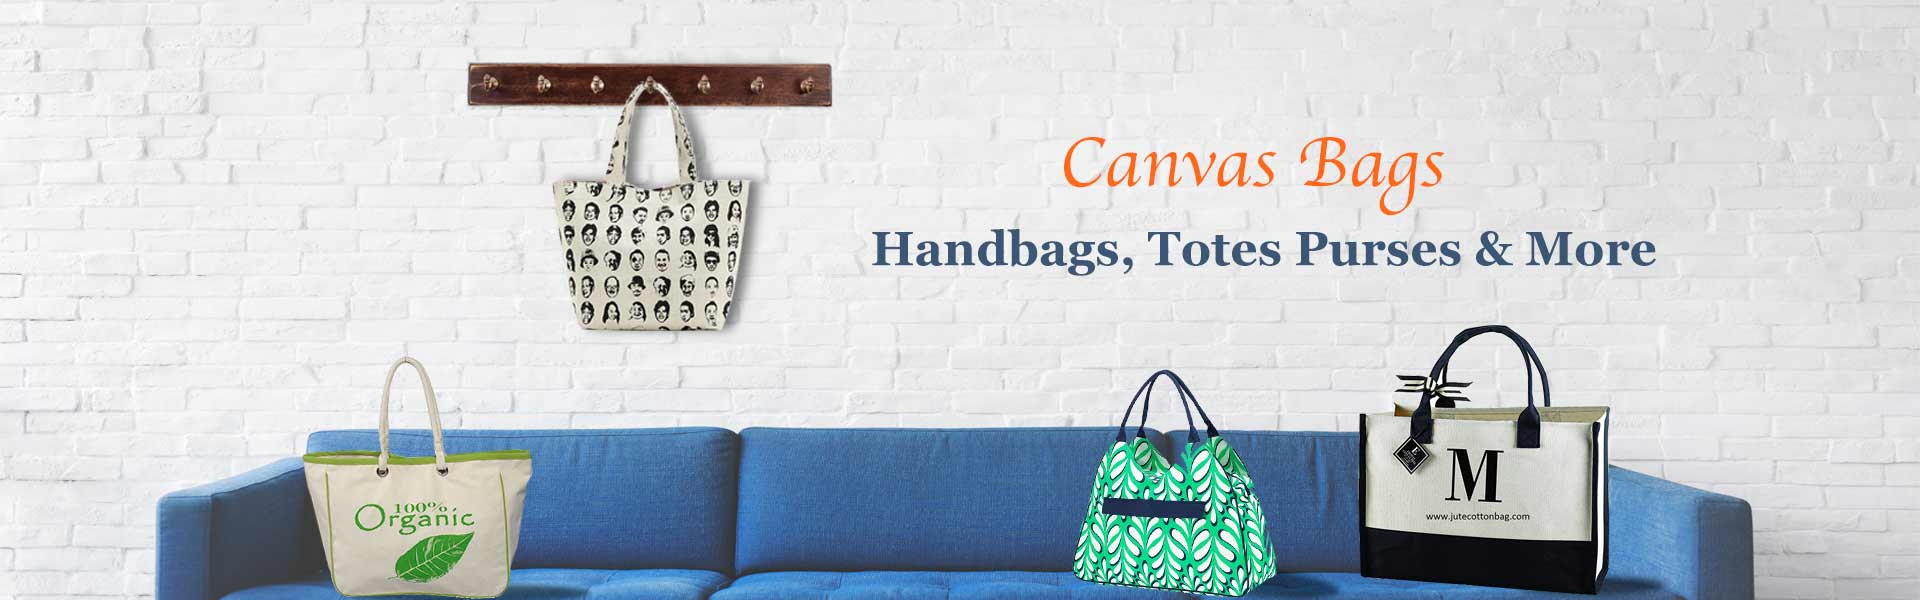 Wholesale Canvas Bags Supplier in Italy